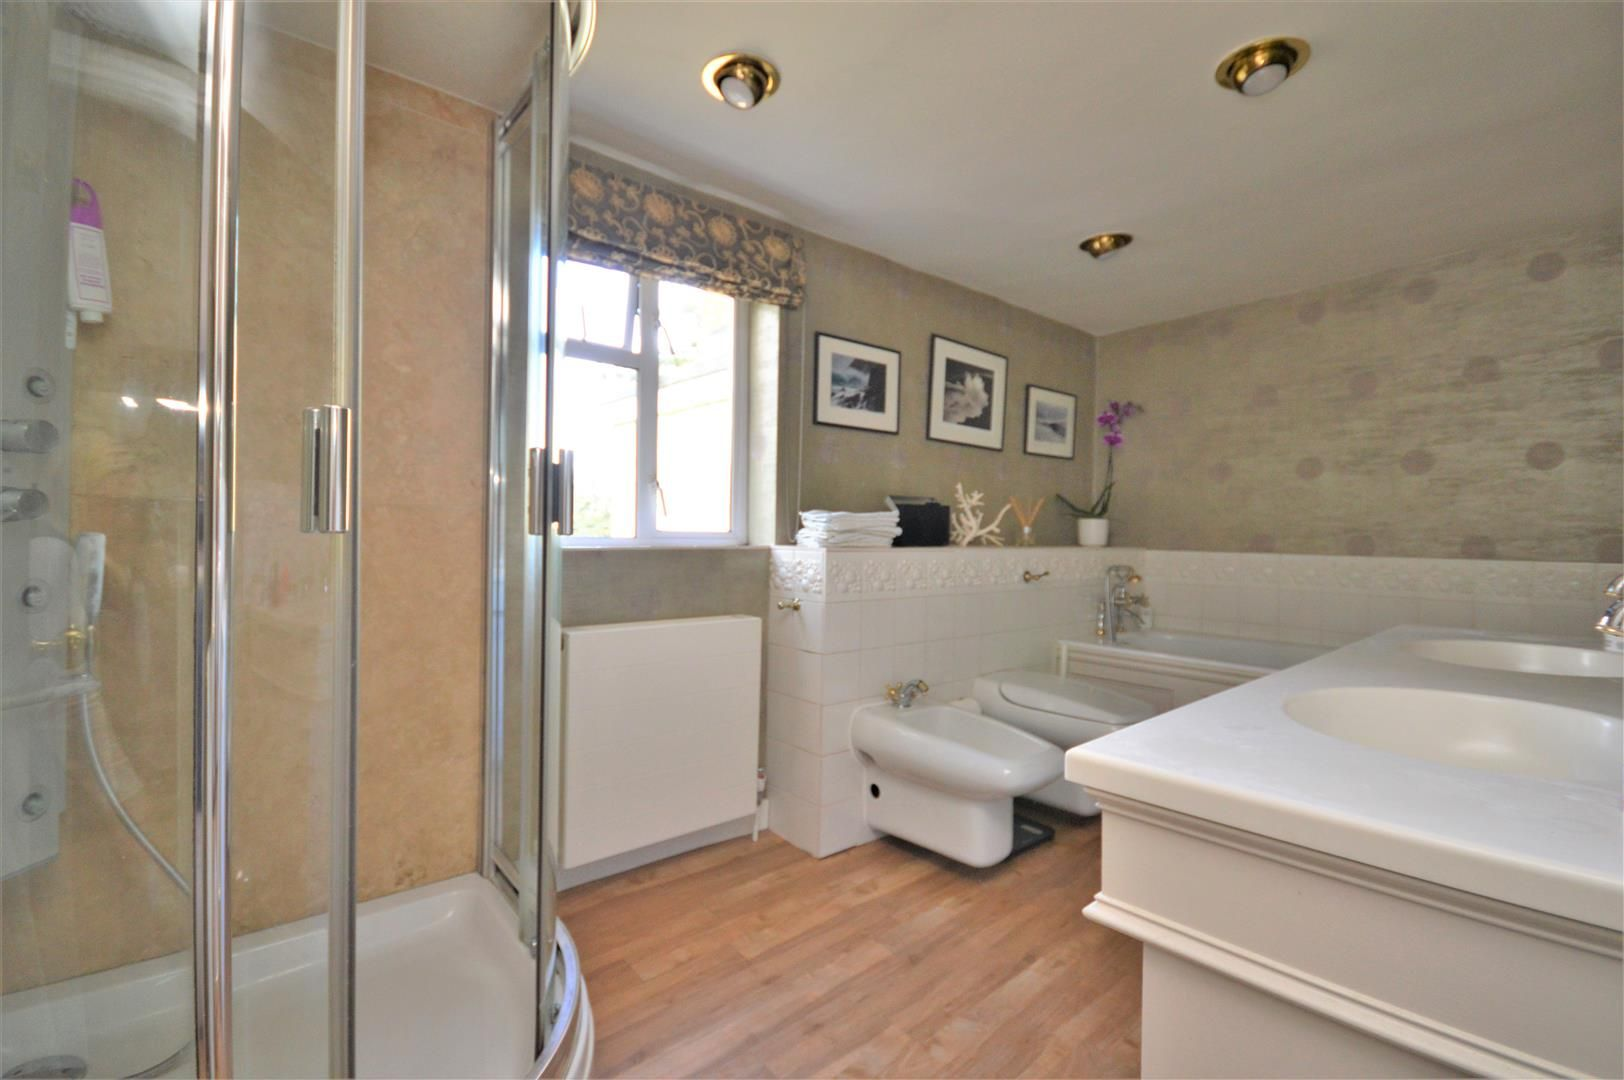 5 bed detached for sale in Stretton Sugwas  - Property Image 22